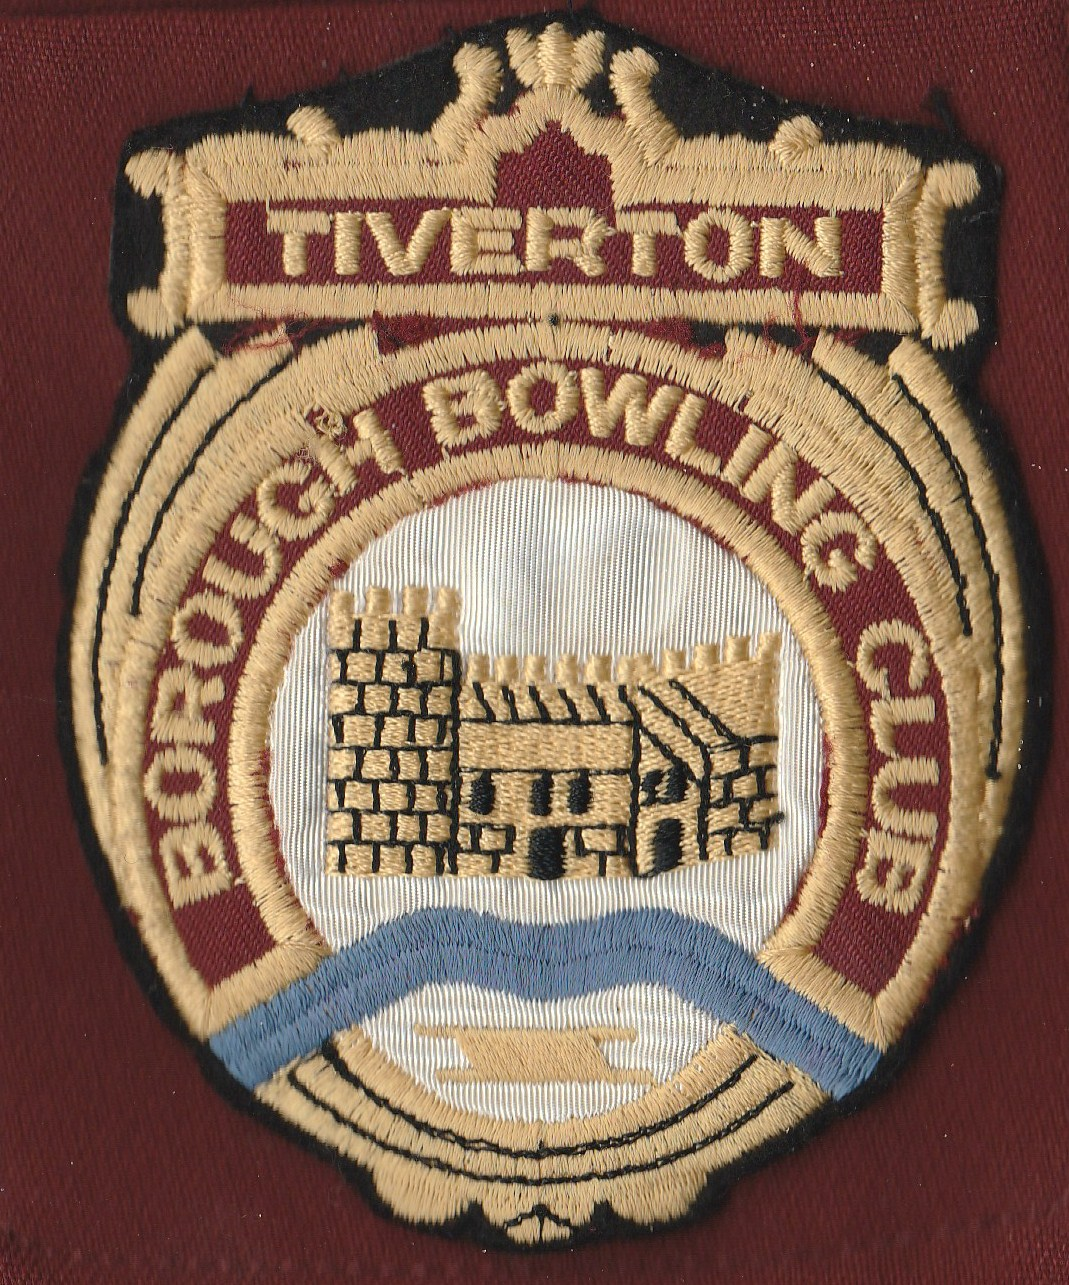 Tiverton Borough Bowls Club About Us